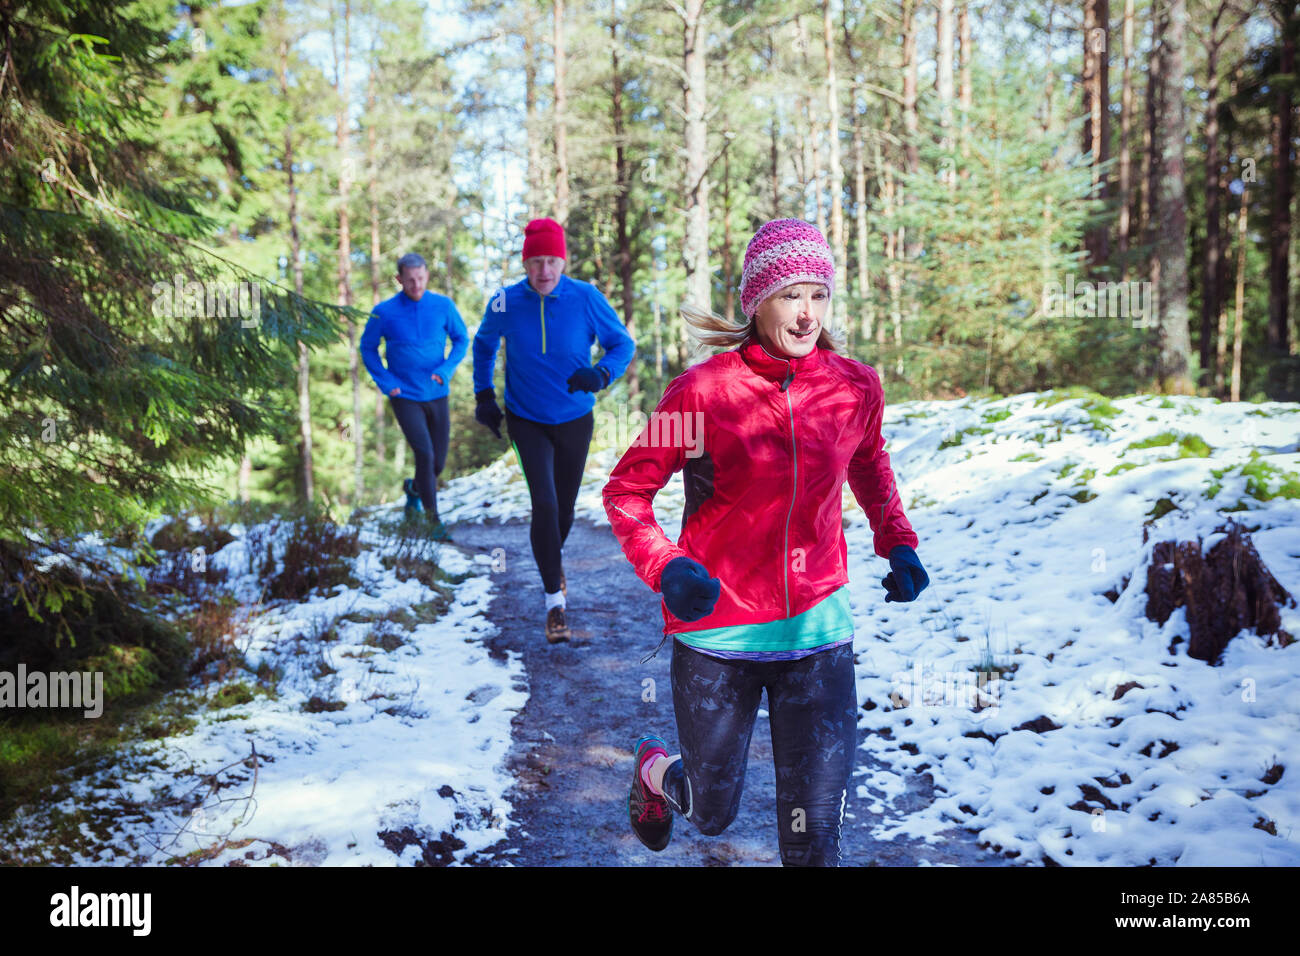 Family jogging on trail in snowy woods Stock Photo